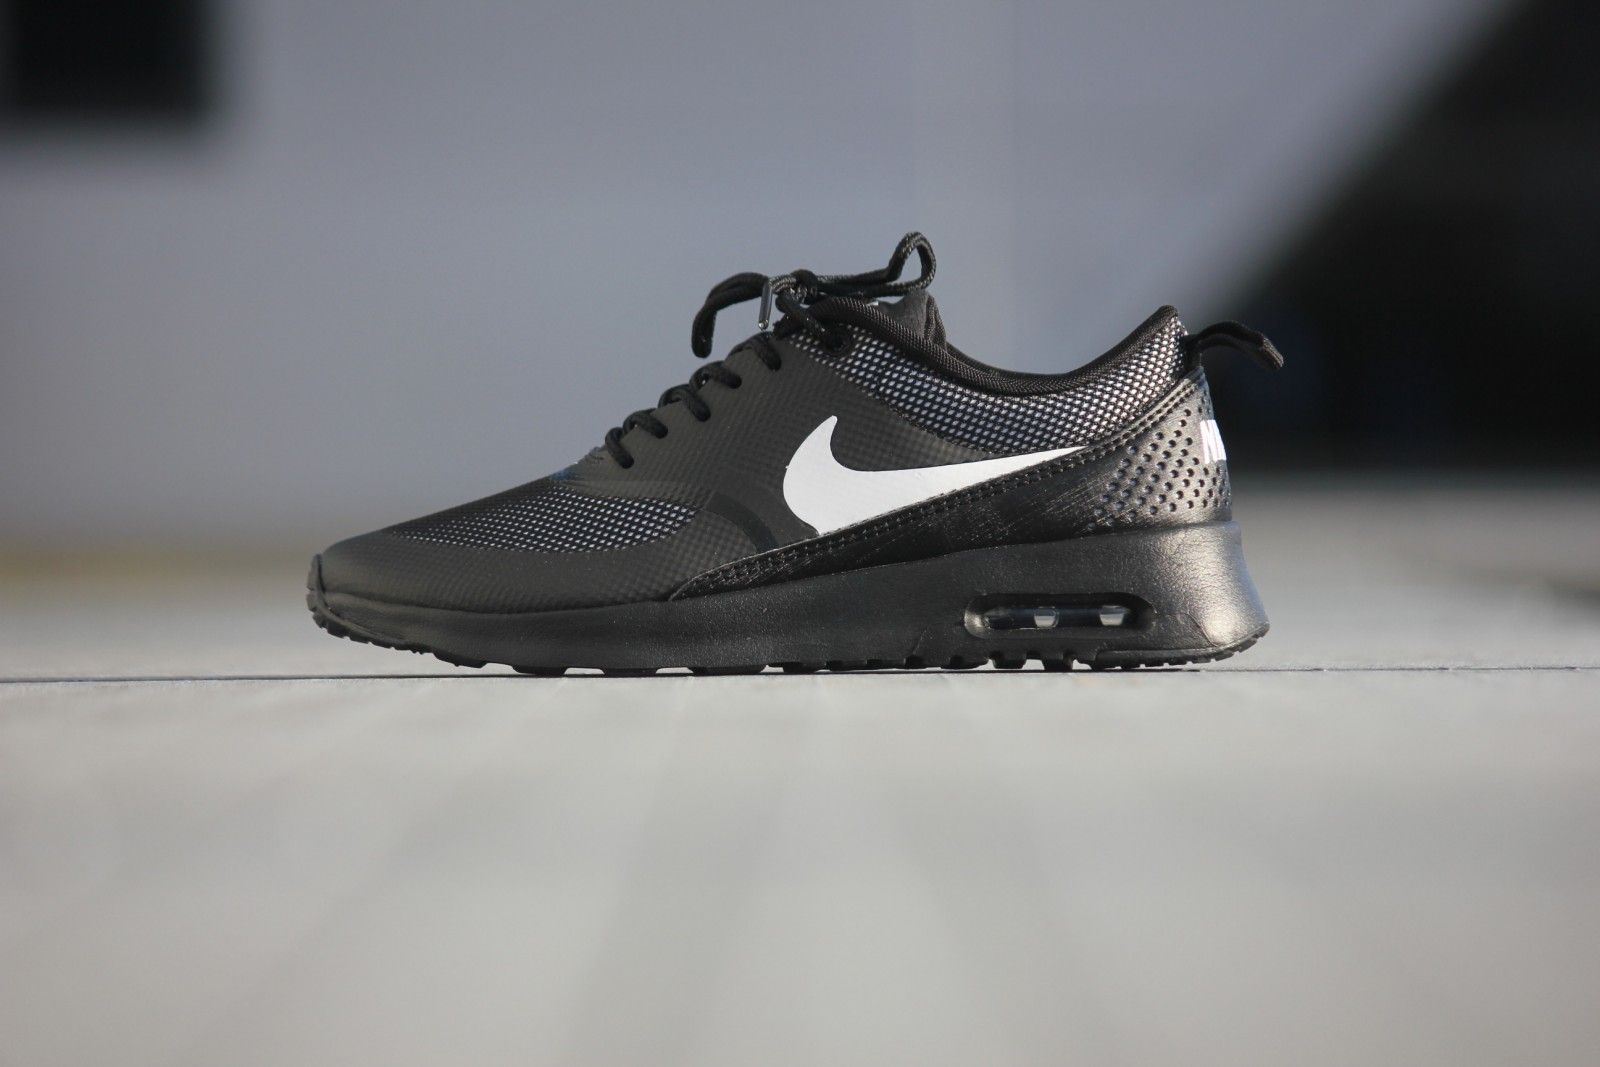 Nike Wmns Air Max Thea Black/ White - 599409-017